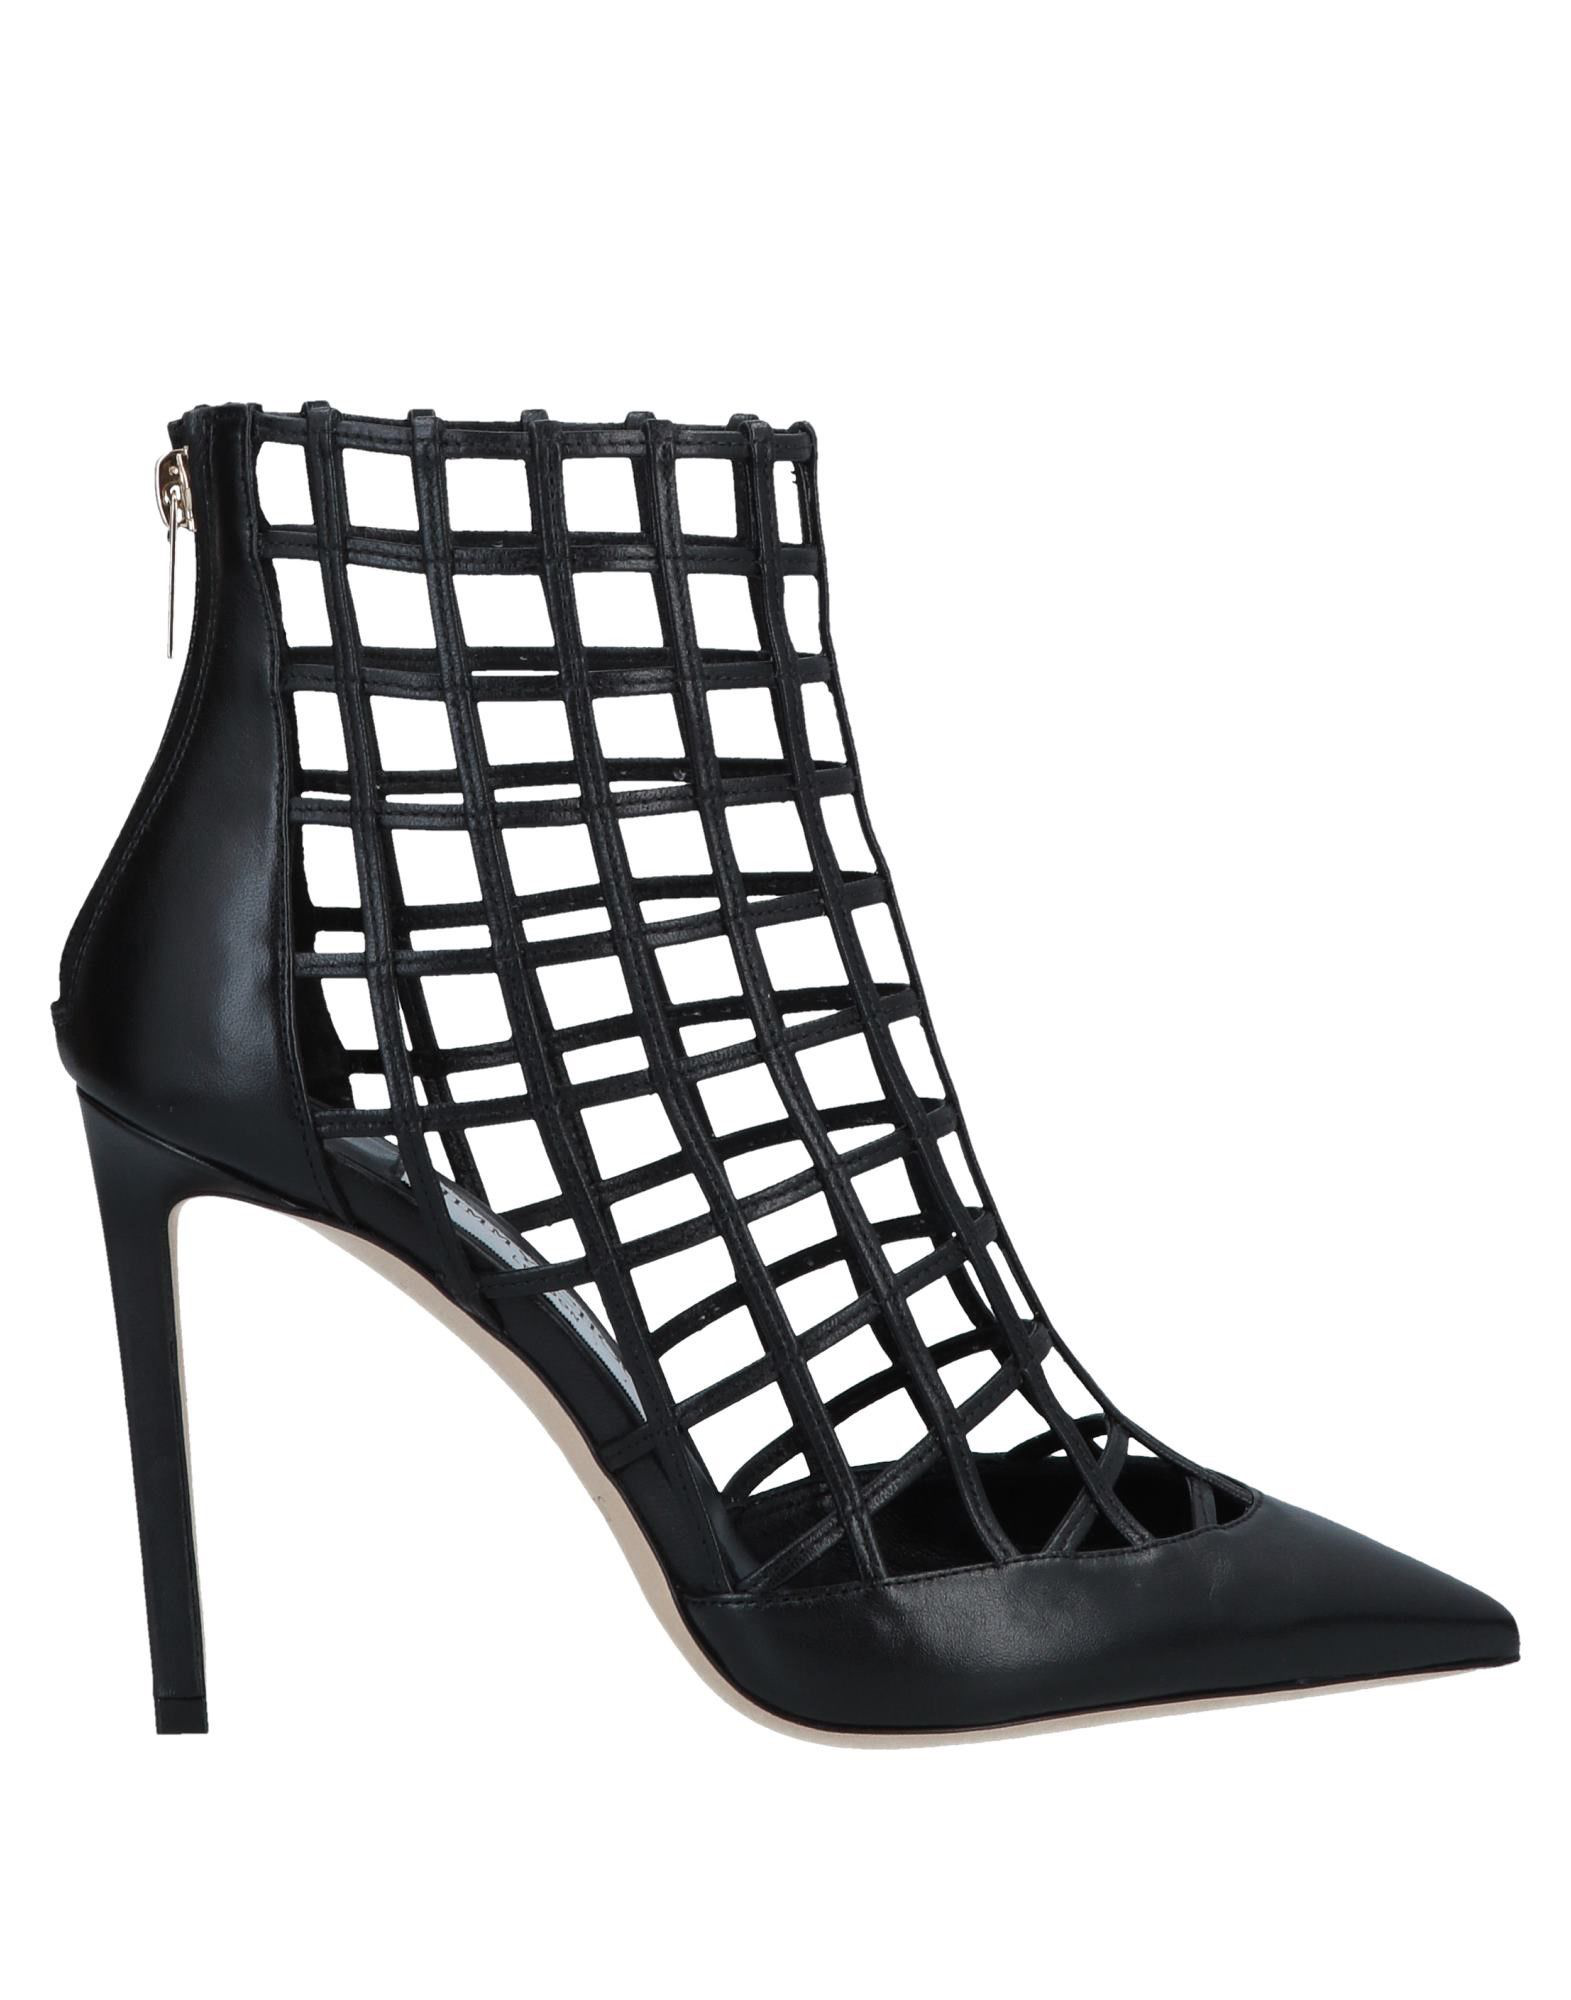 f3e57a5819a7 Jimmy Choo Women s Sheldon 100 Caged Leather High-Heel Booties In Black.  yoox.com